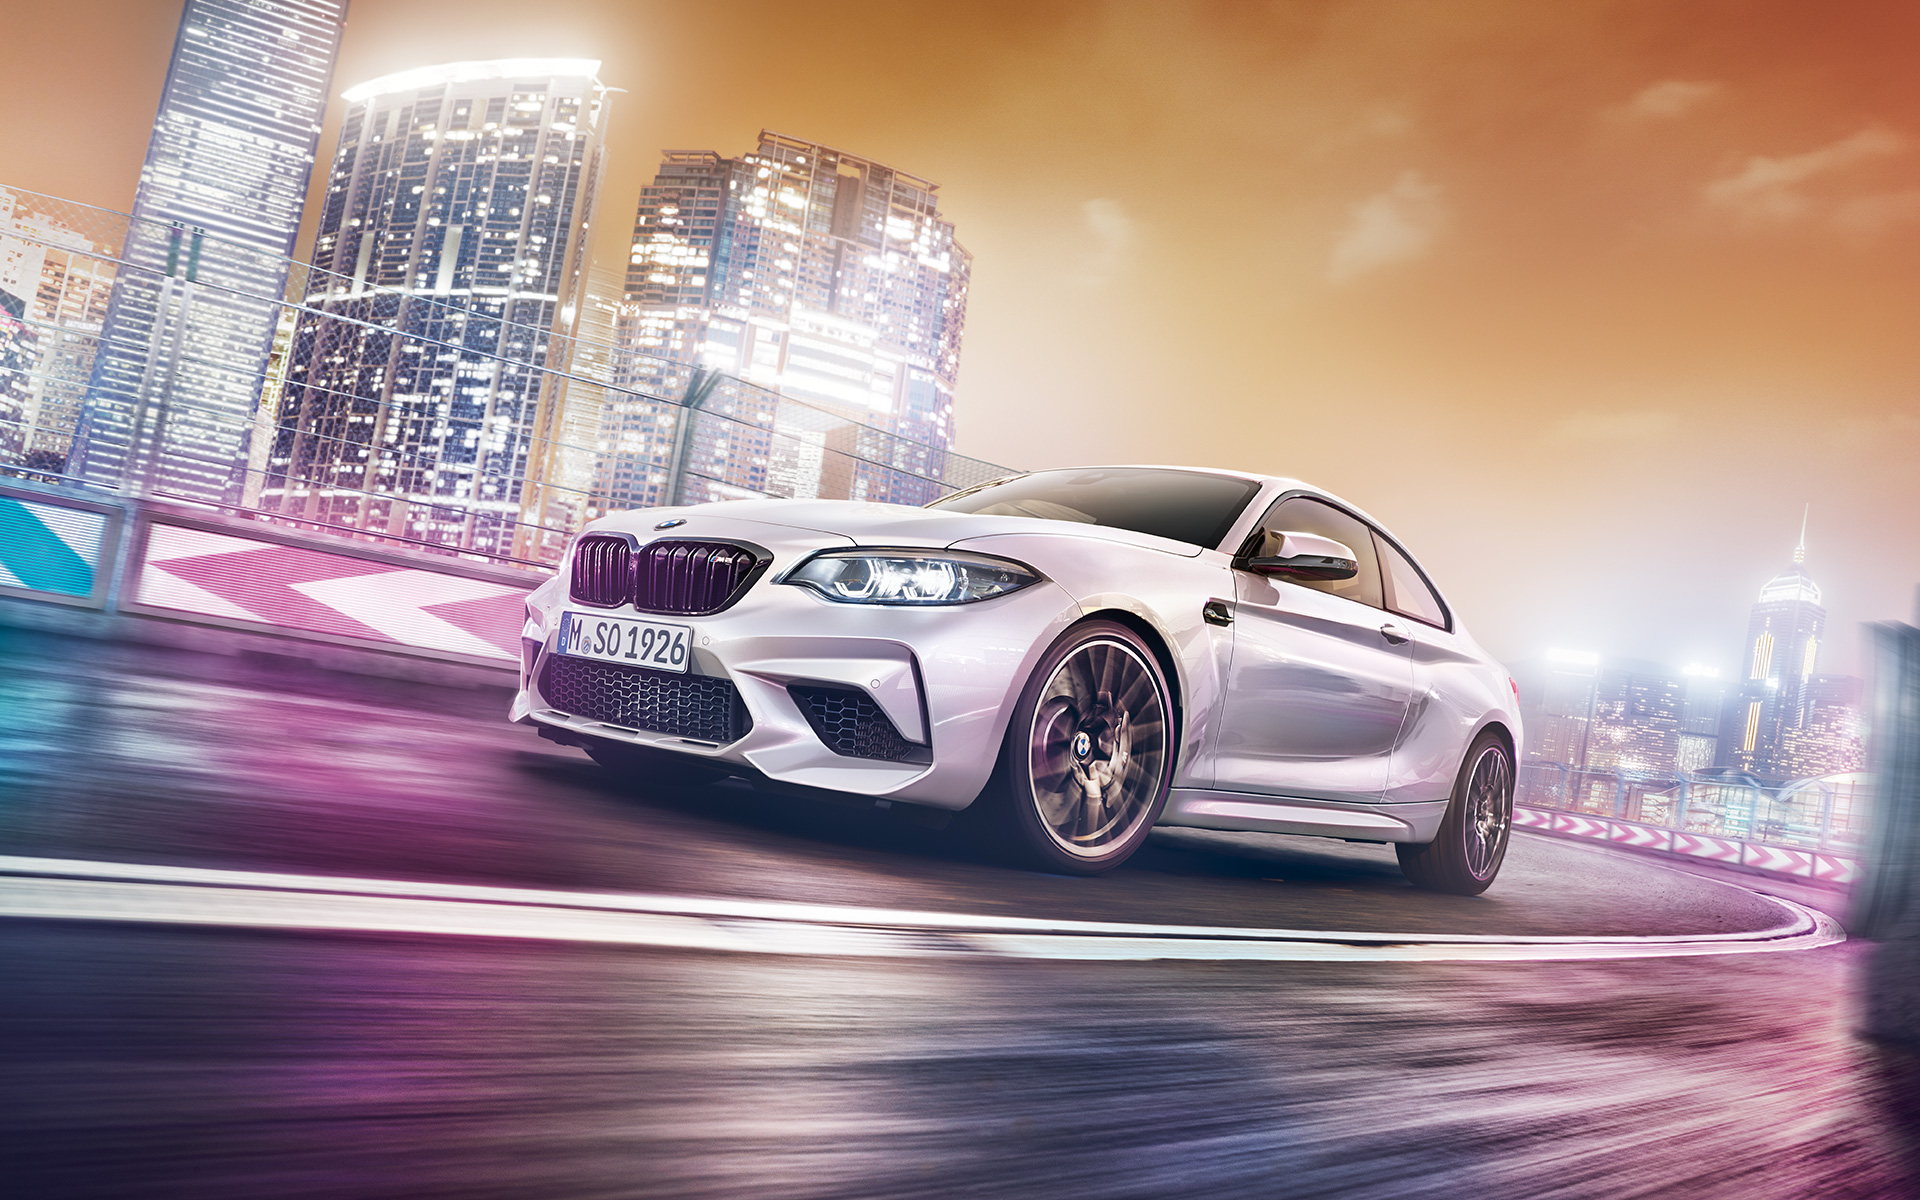 Новый BMW M2 Competition, в движении на трассе, на фоне города, БМВ.